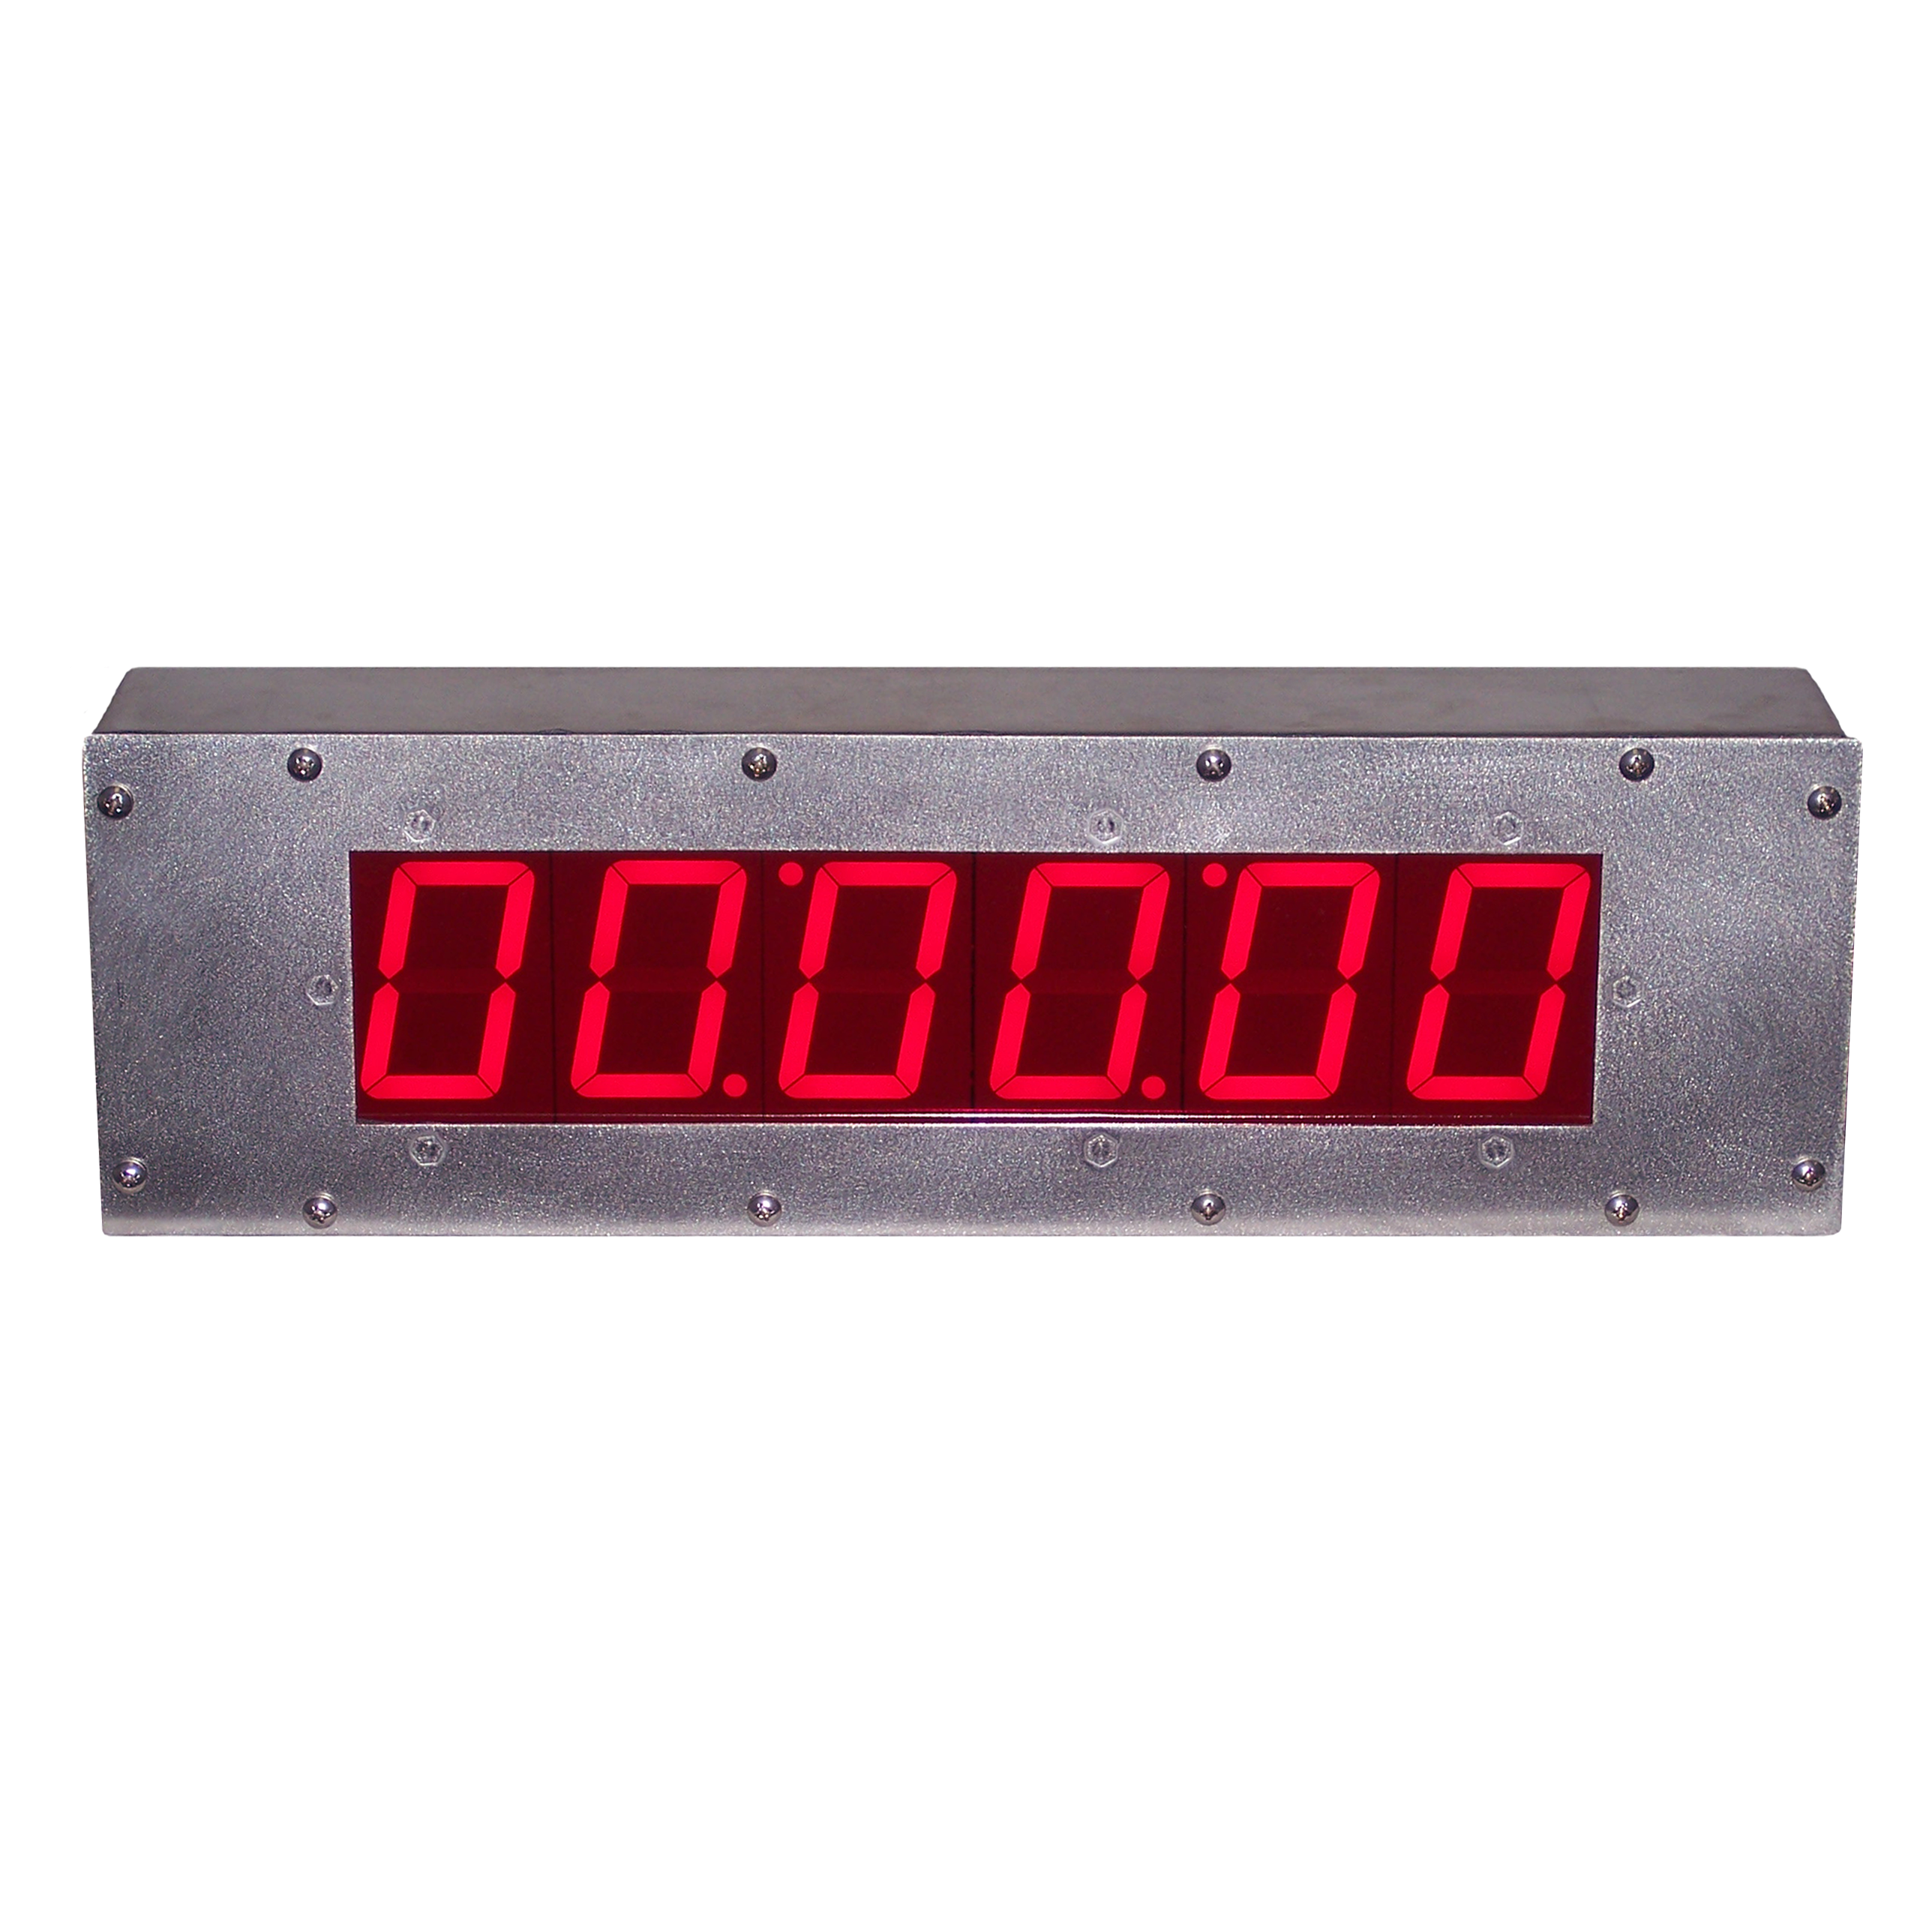 DC-256T-UP-TERM-OPerating-Room-Timer-STAINLESS